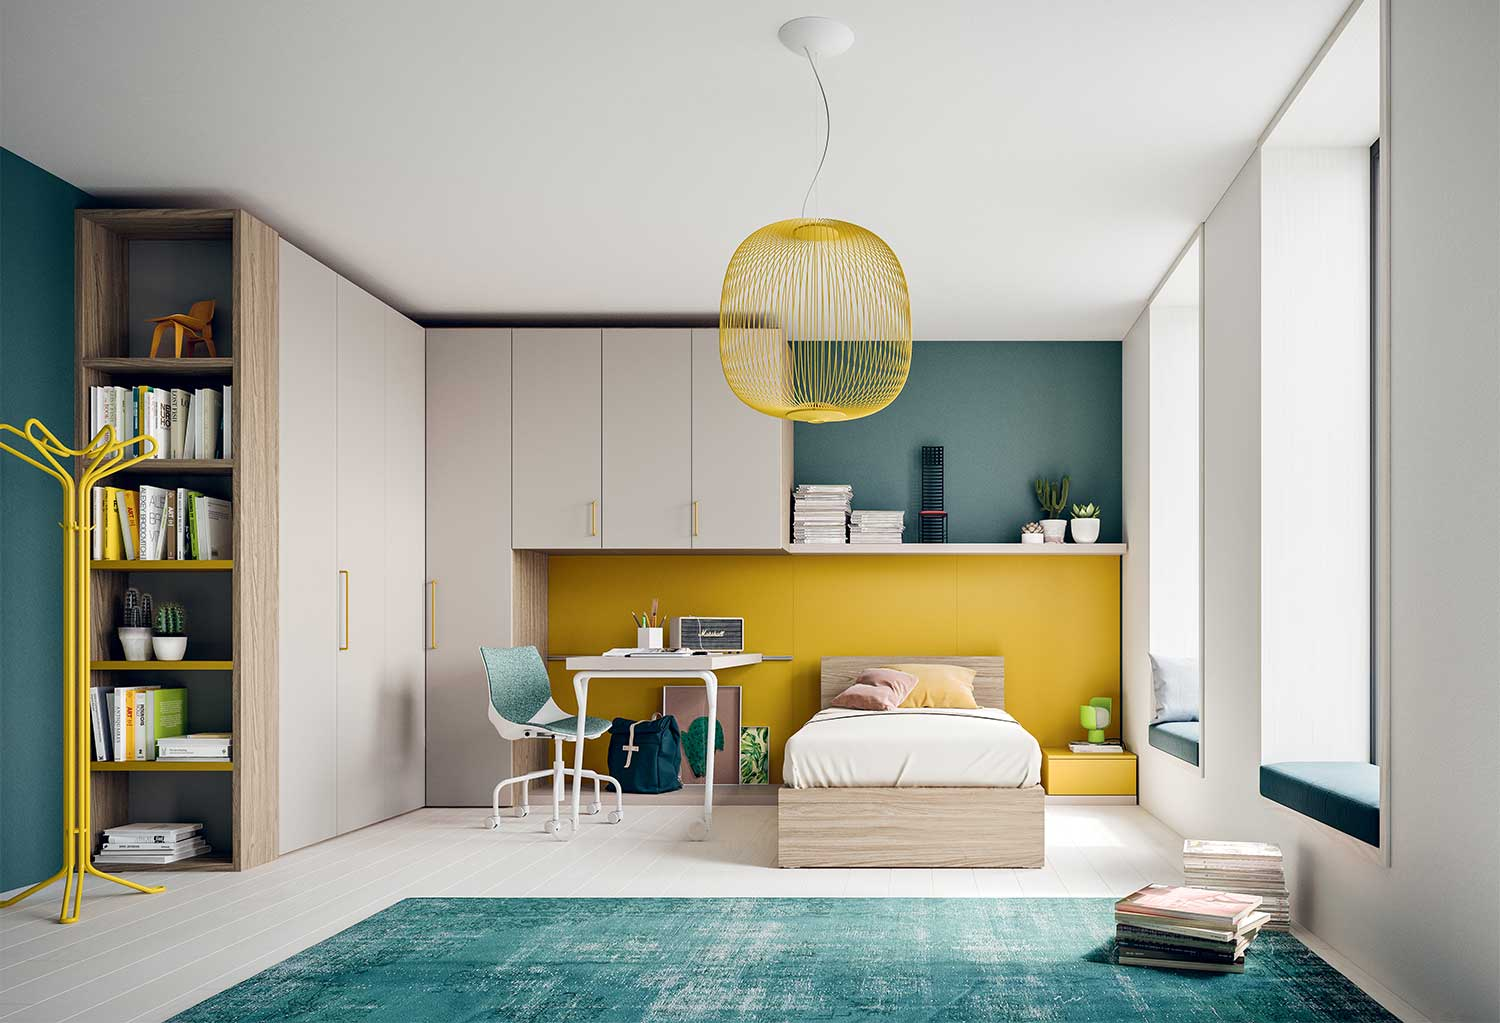 Start T11 corner kids bedroom furniture for girls or boys, including modular L-shaped wardrobe, single bed and desk with casters